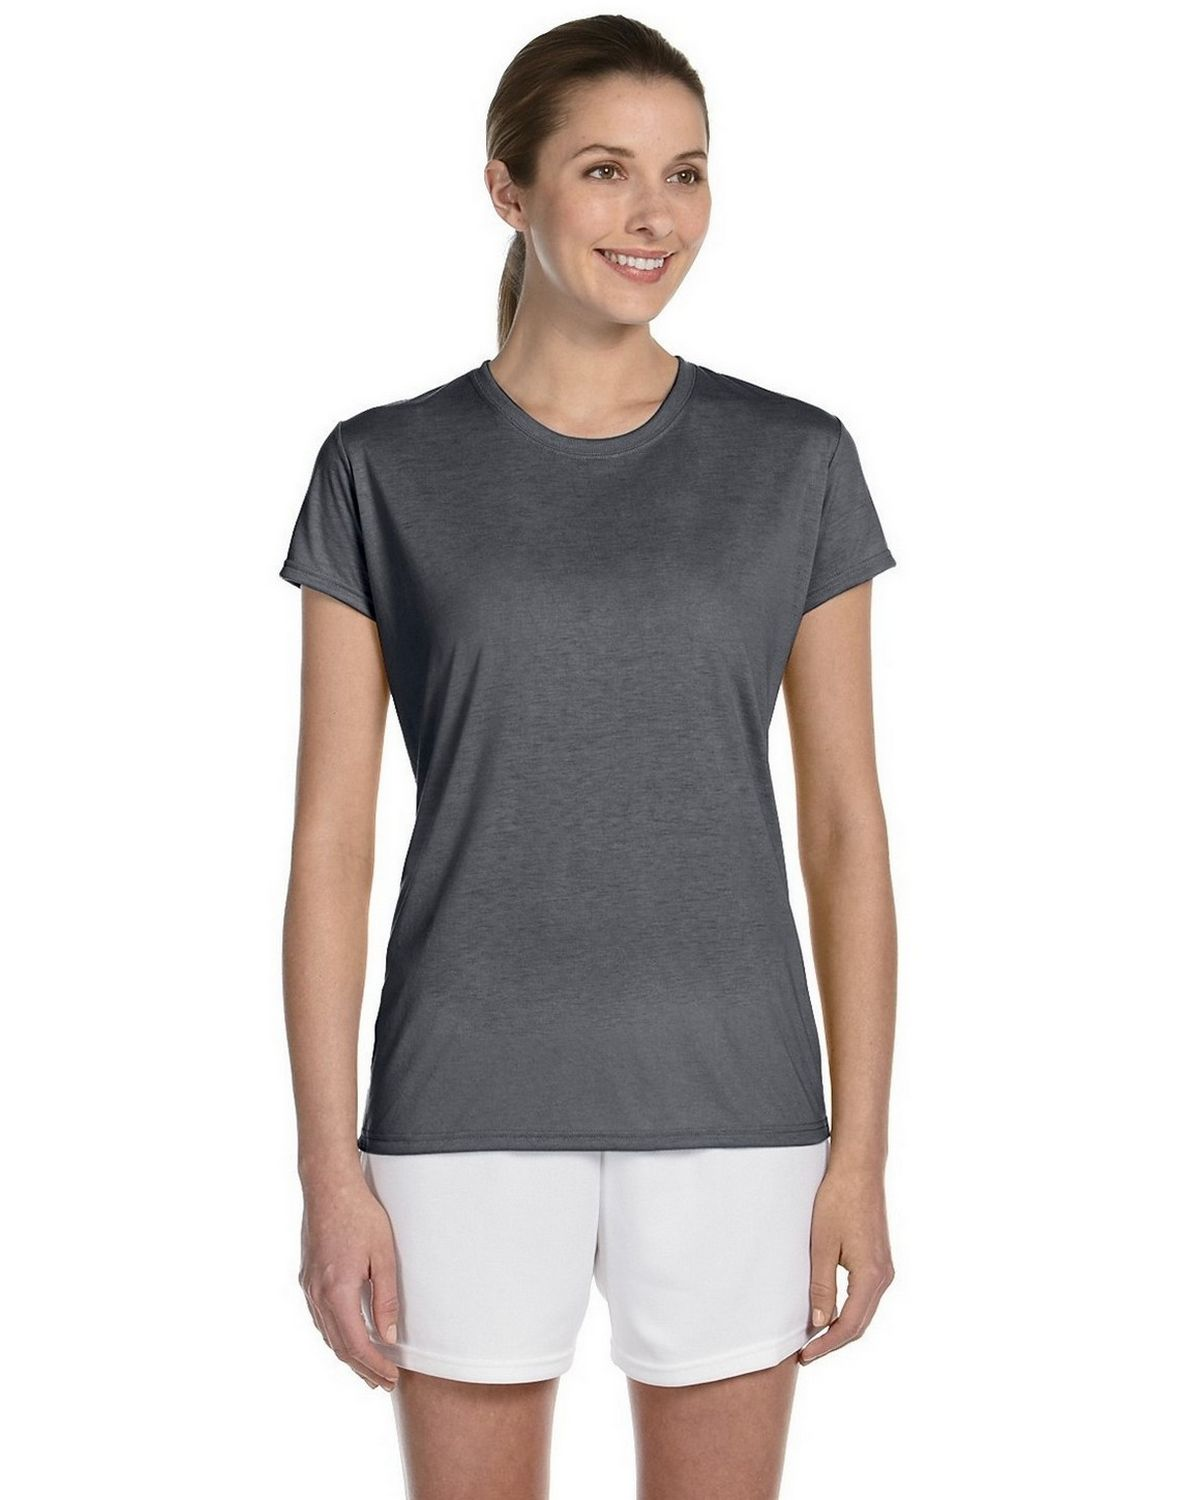 Gildan Womens Performance T-Shirt G420l -Sport Grey M G420L